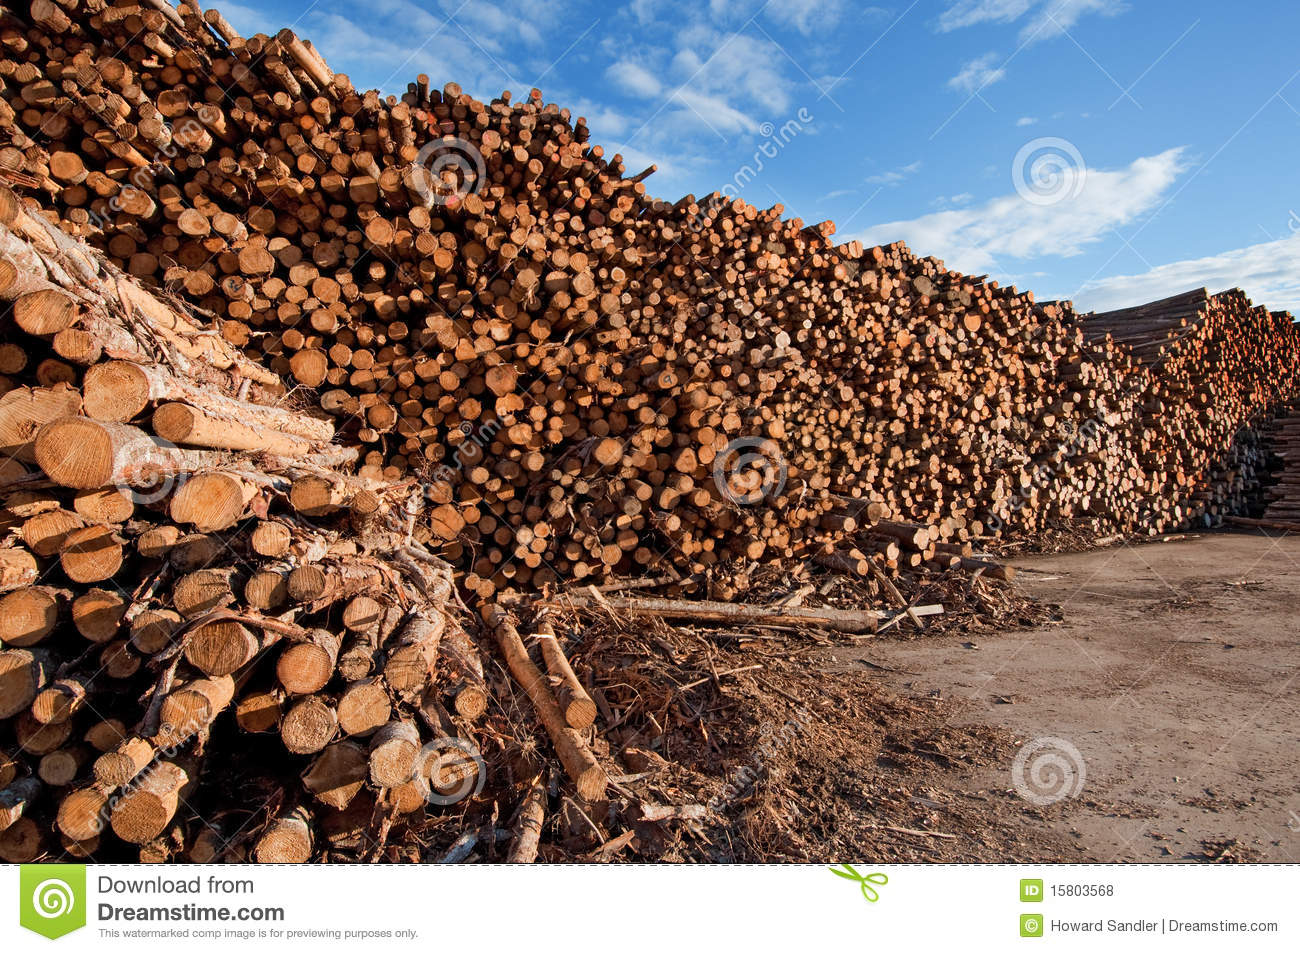 Immense Log Pile, Saguenay Quebec Royalty Free Stock Photos - Image: 15803568